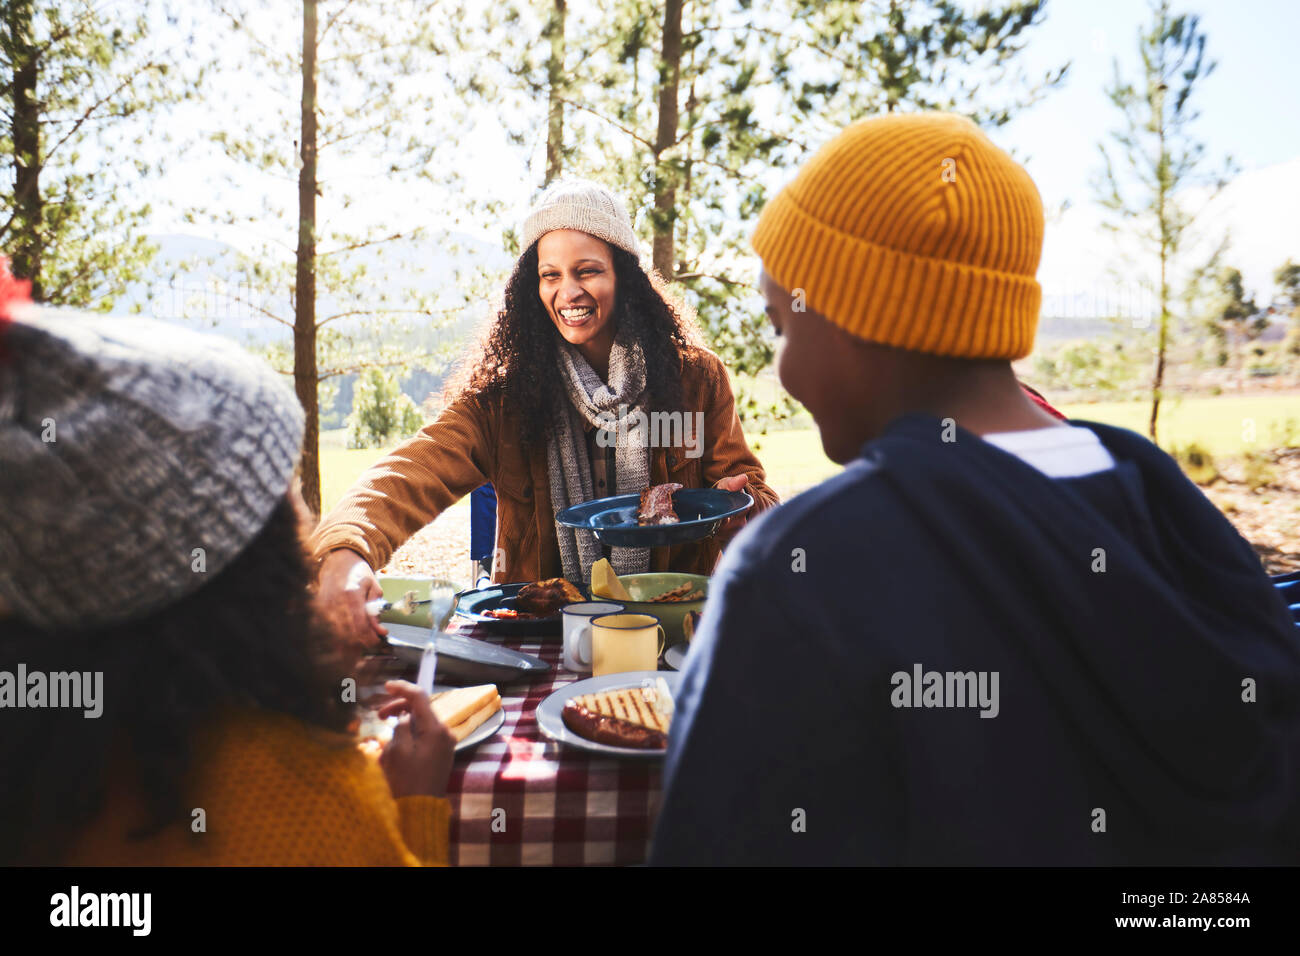 Happy mother and kids eating at campsite Stock Photo